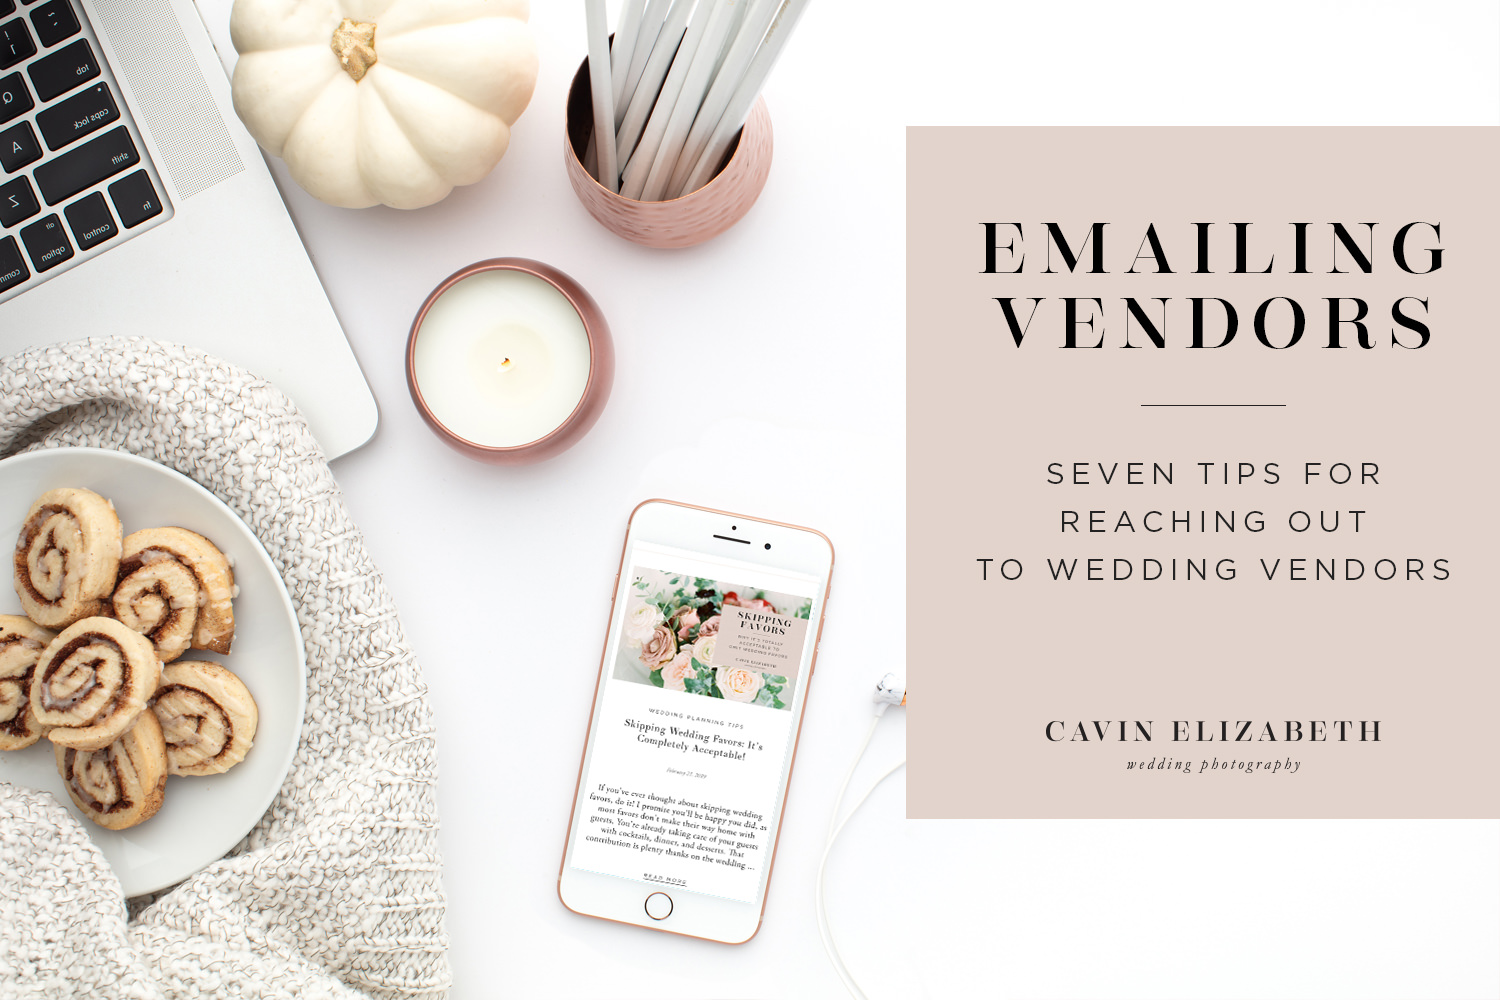 7 Tips for Contacting Potential Wedding Vendors. Tips for emailing vendors and getting back the responses you need.